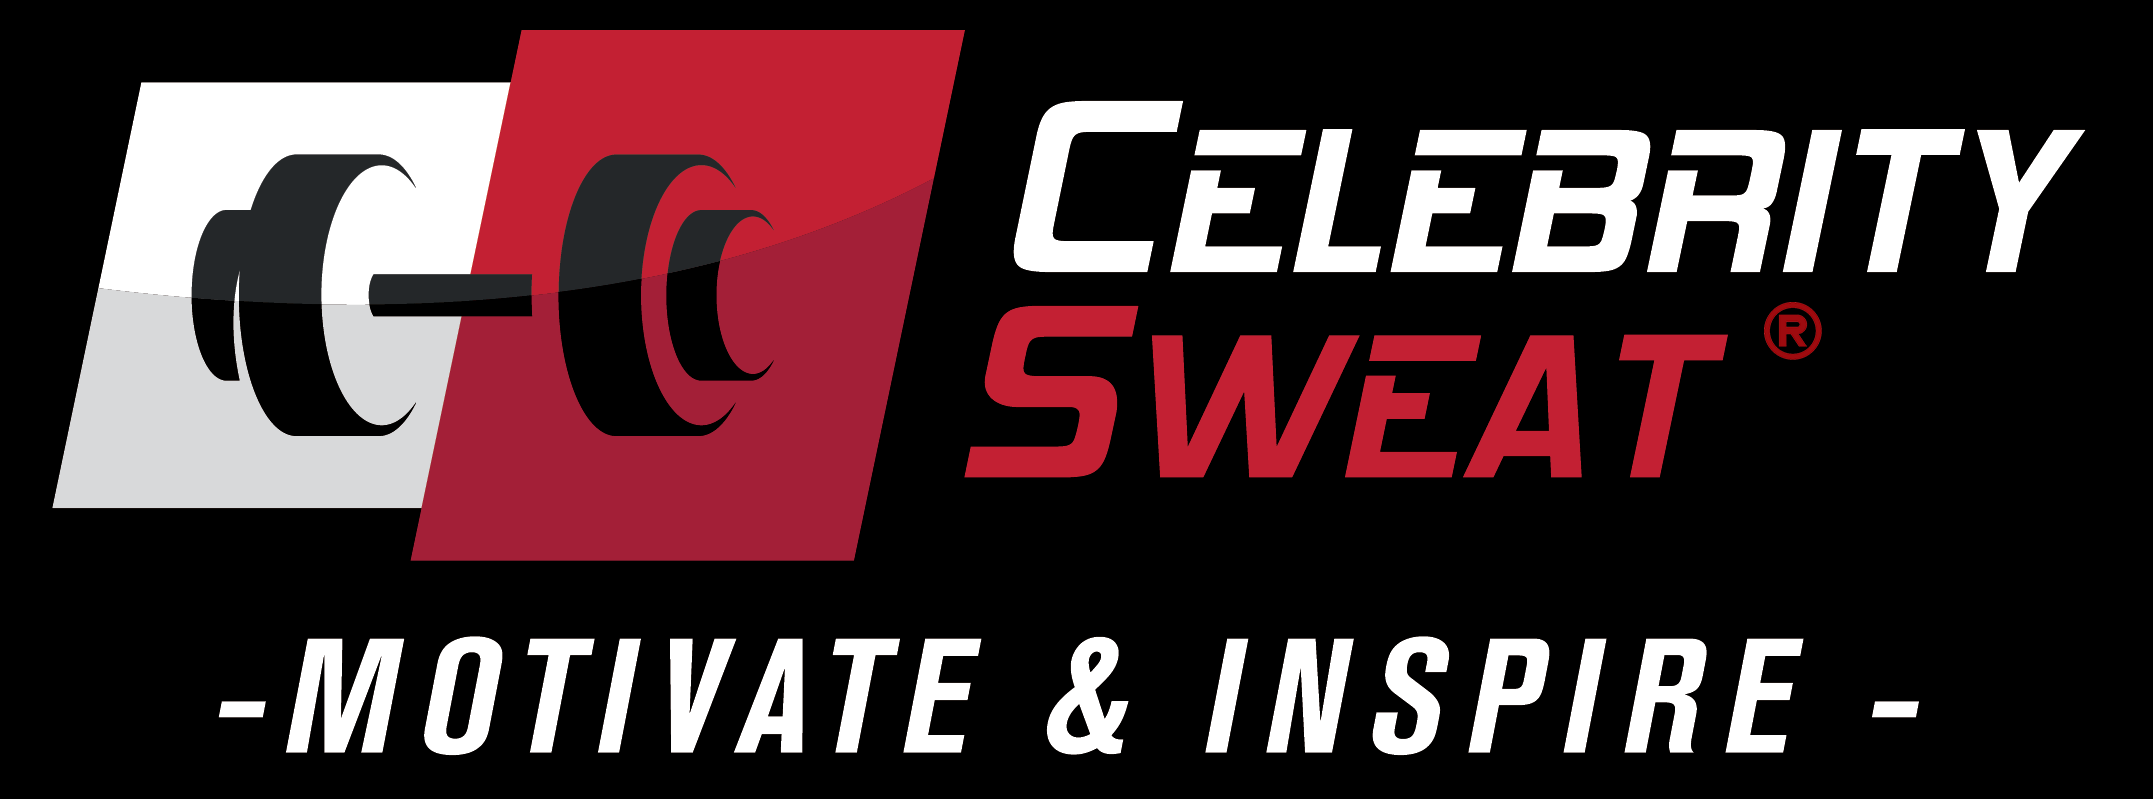 Celebrity Sweat Logo